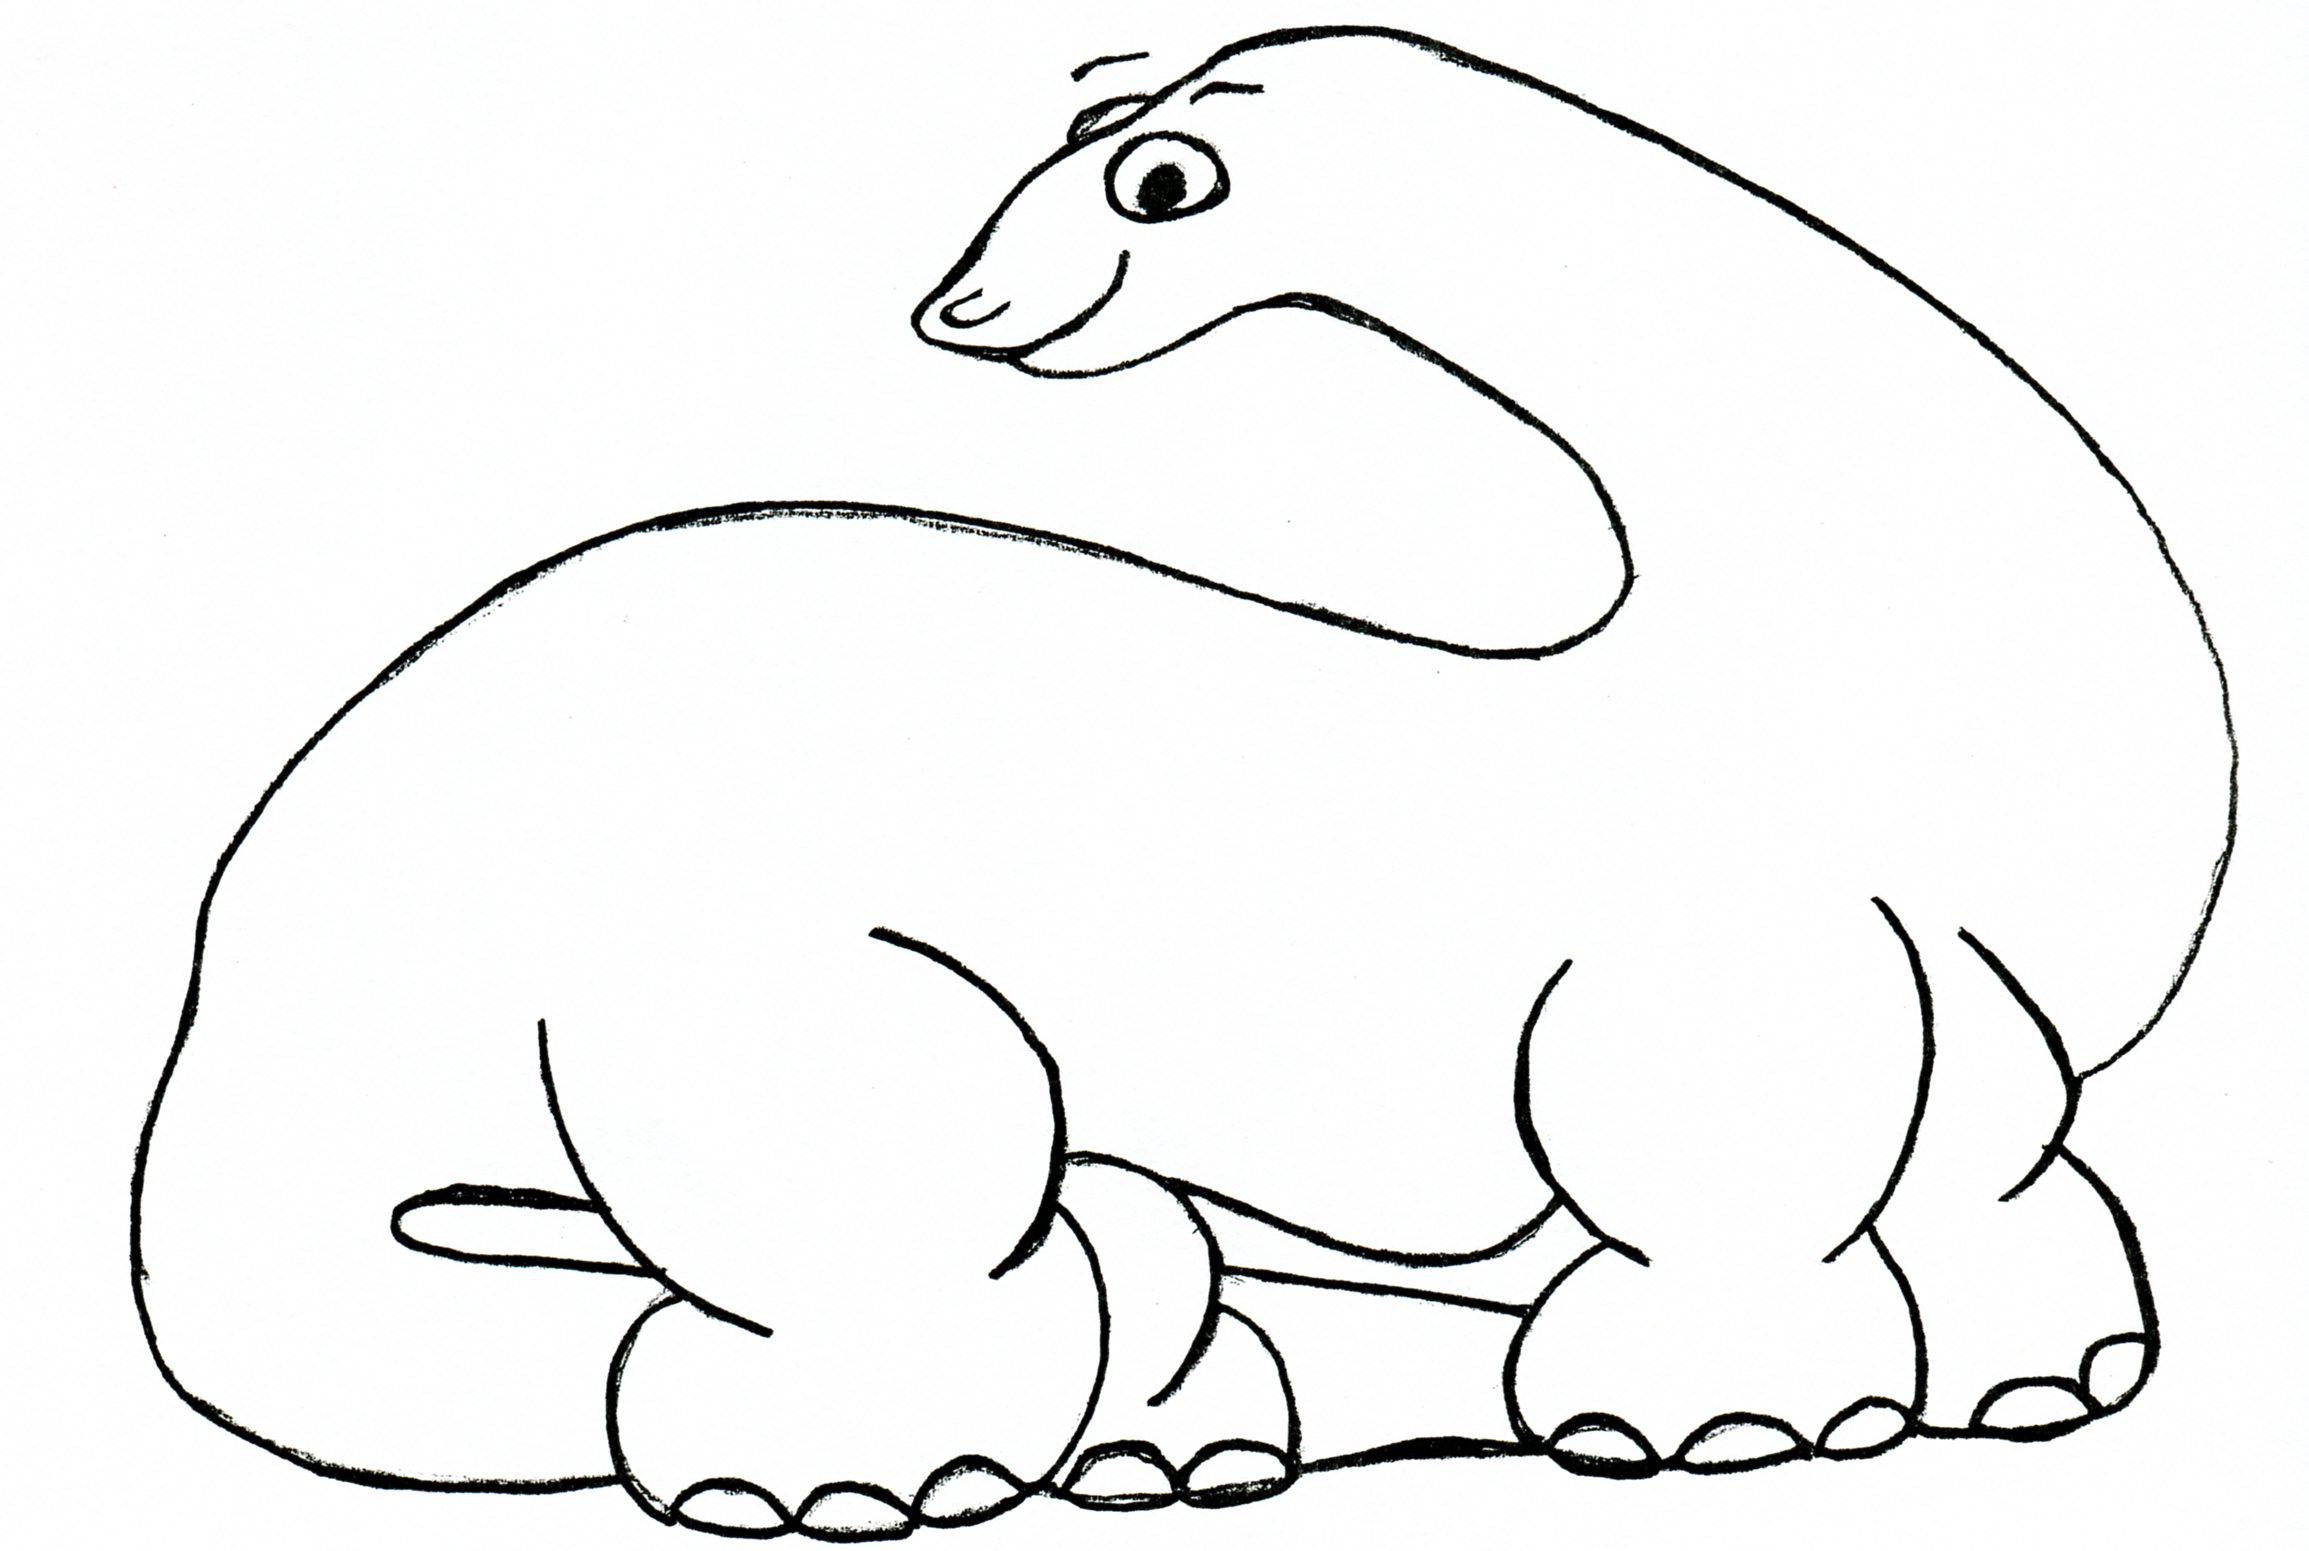 It's just a picture of Dramatic Dinosaur Outline Printable